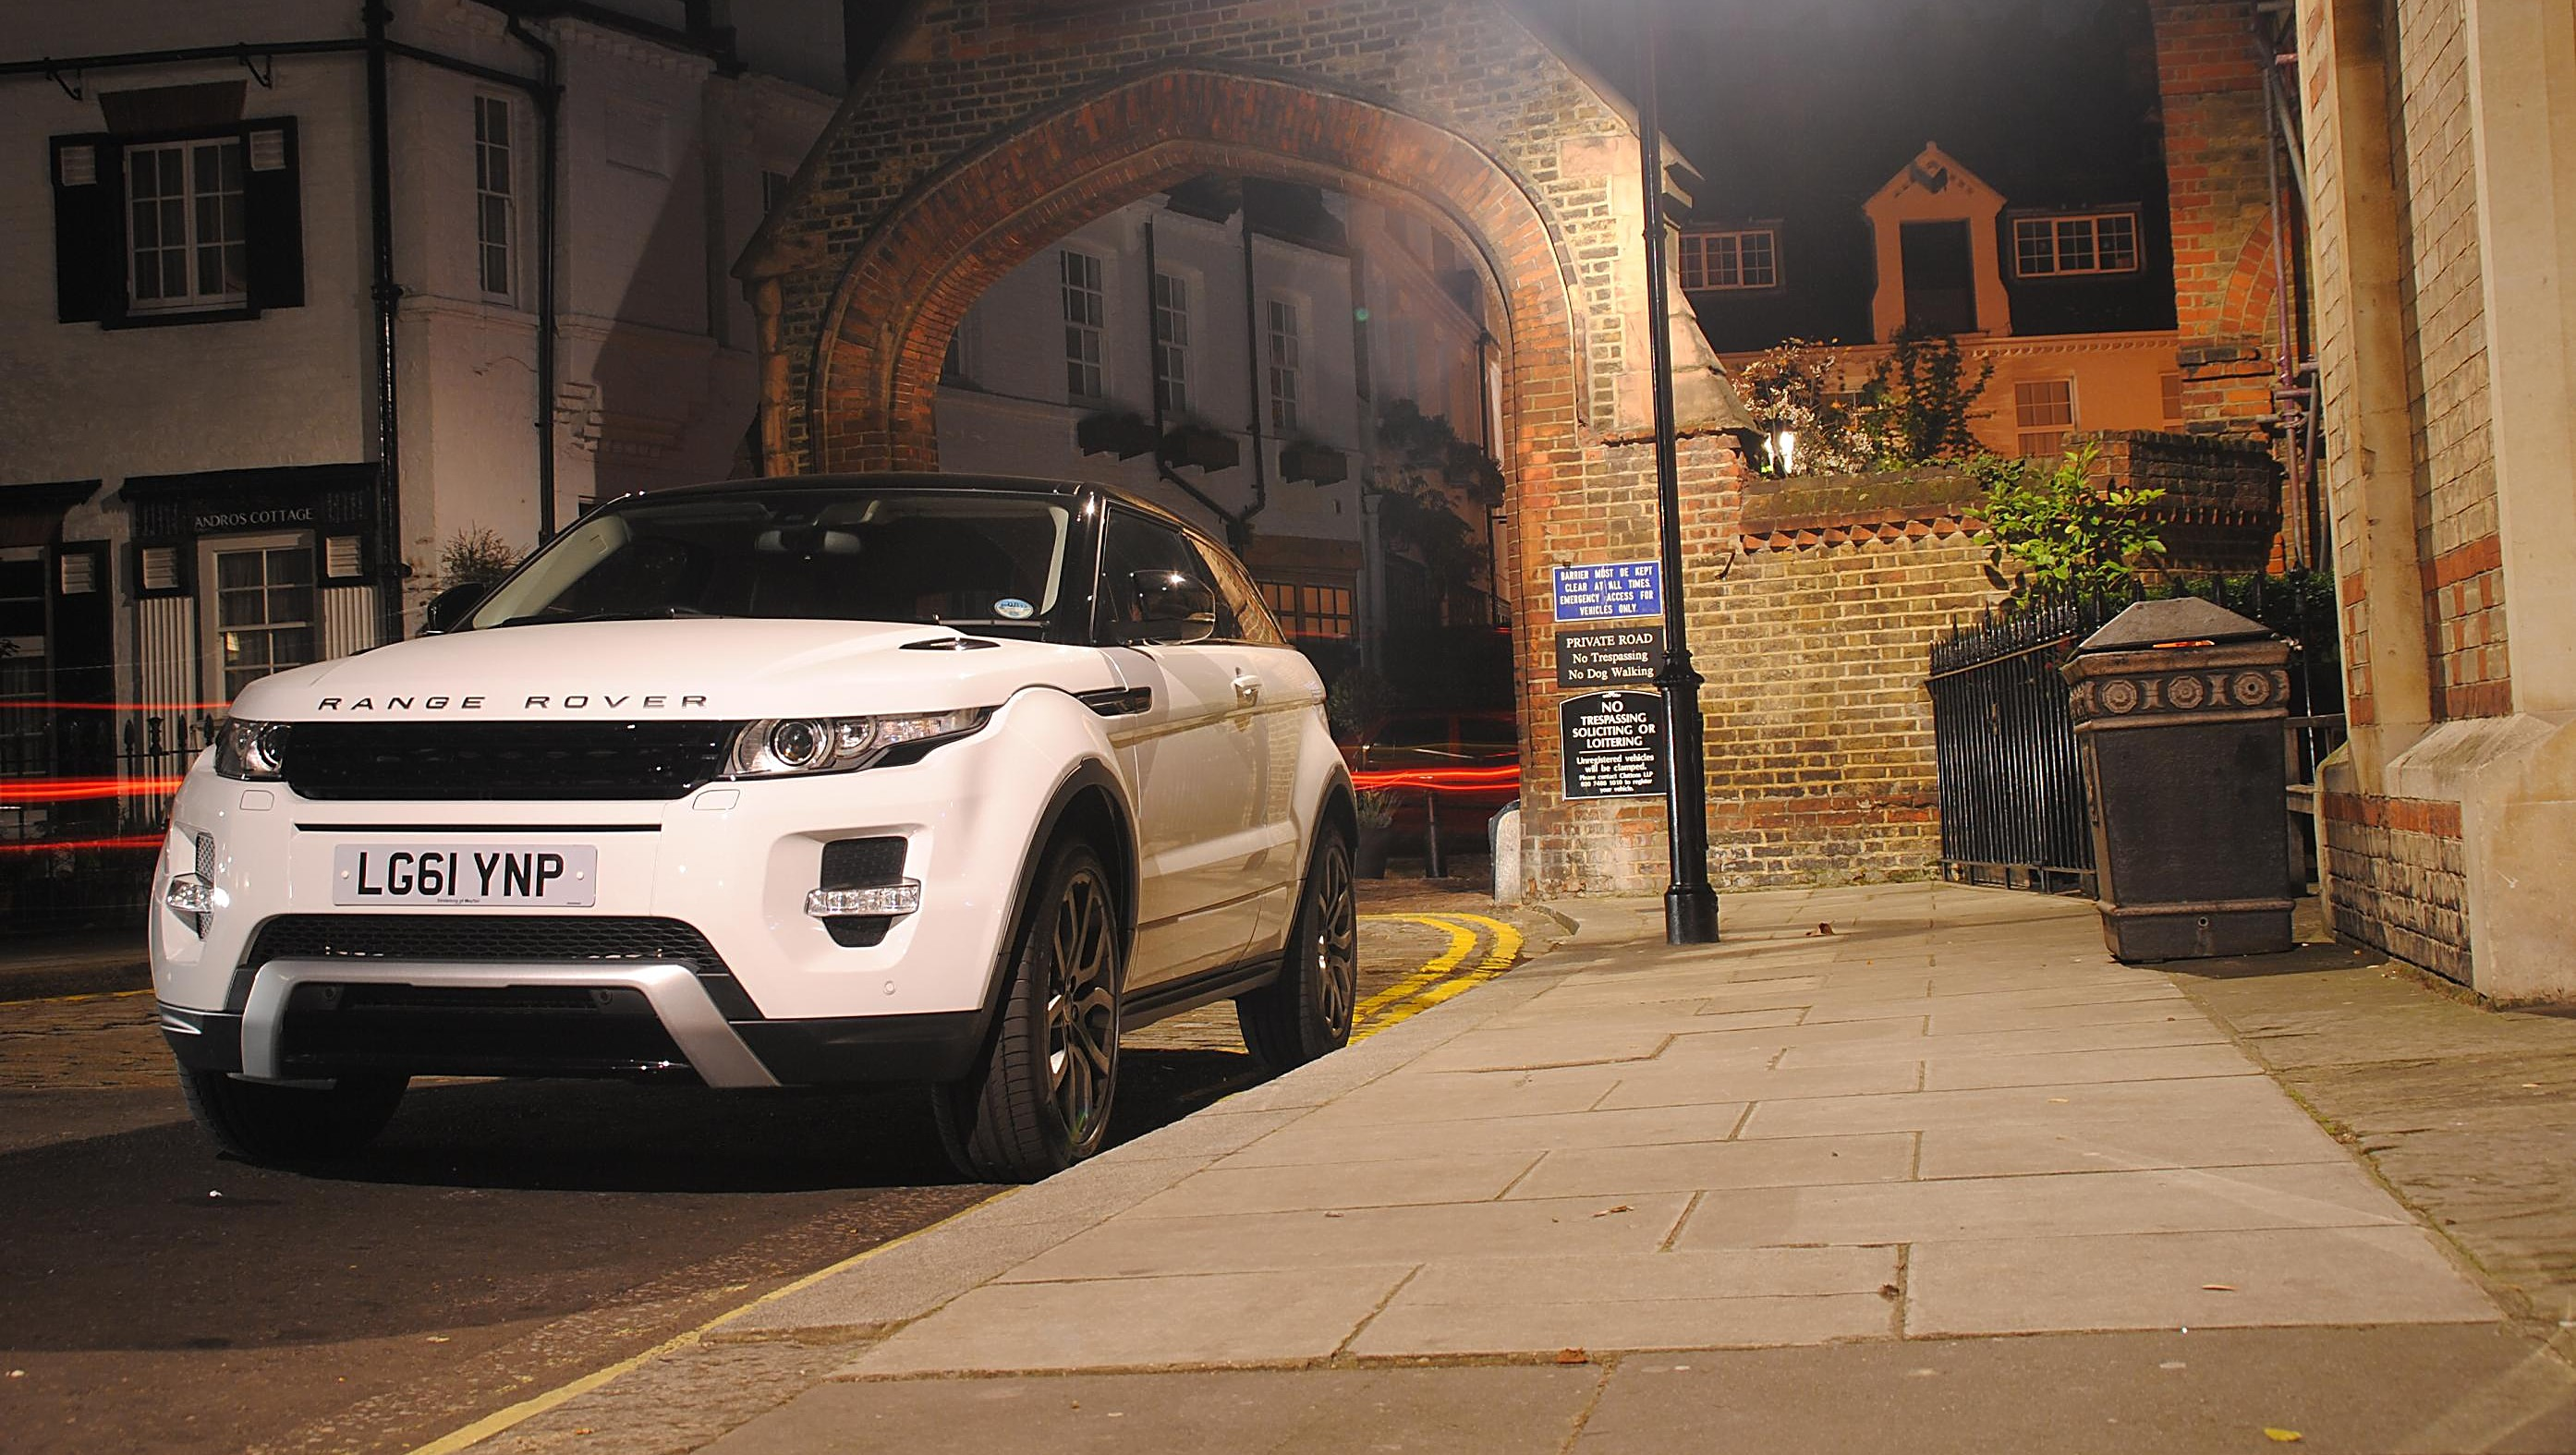 Consumer Reports Trashes Range Rover Evoque Nouveau Riche Shrug